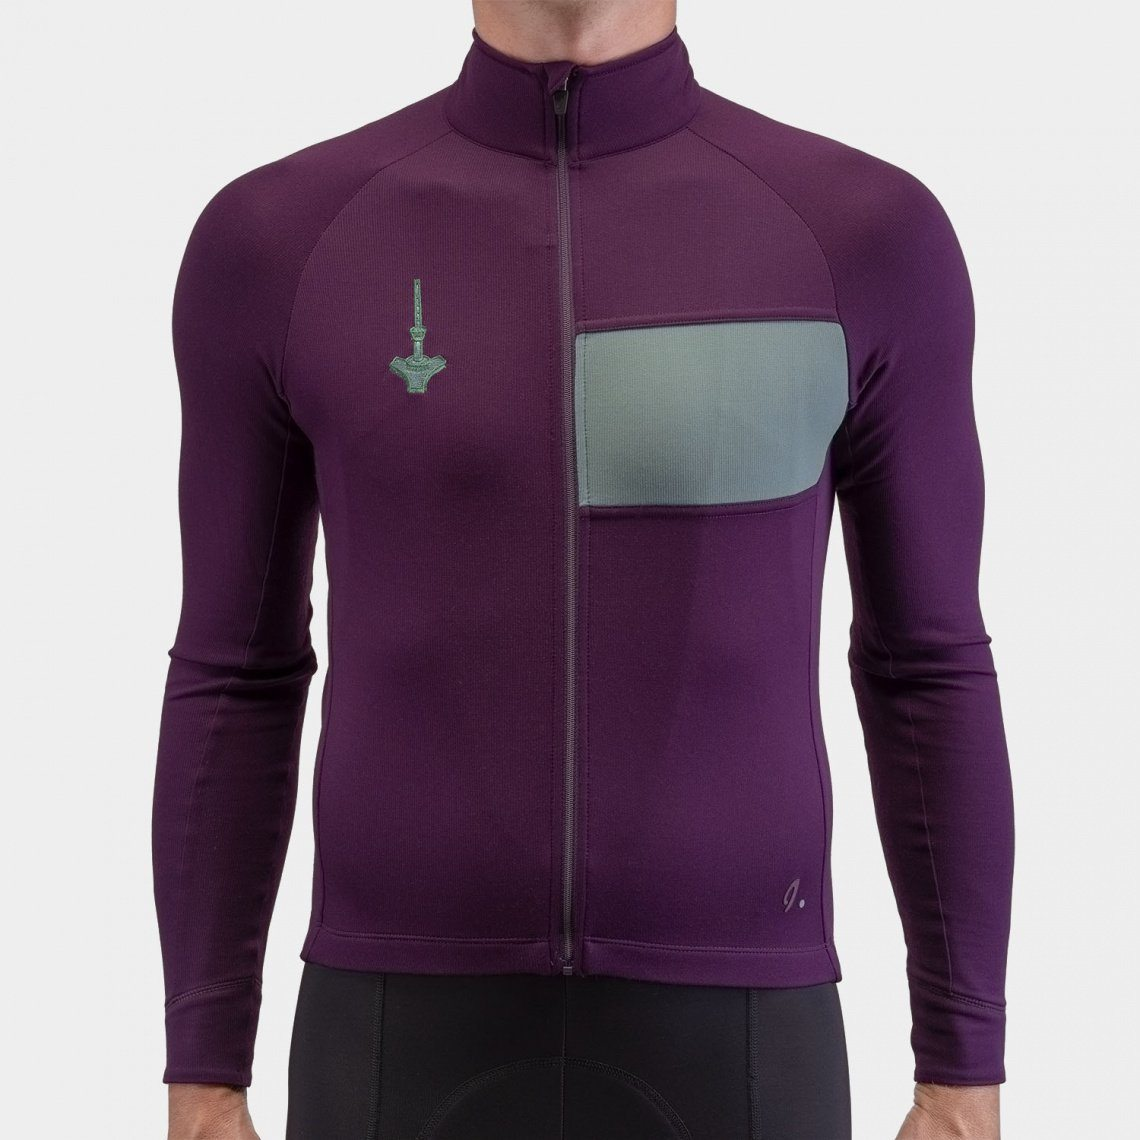 Jeseniky Long Sleeve Cycling Jersey - (Limited Edition) Cycling Jersey Isadore XS